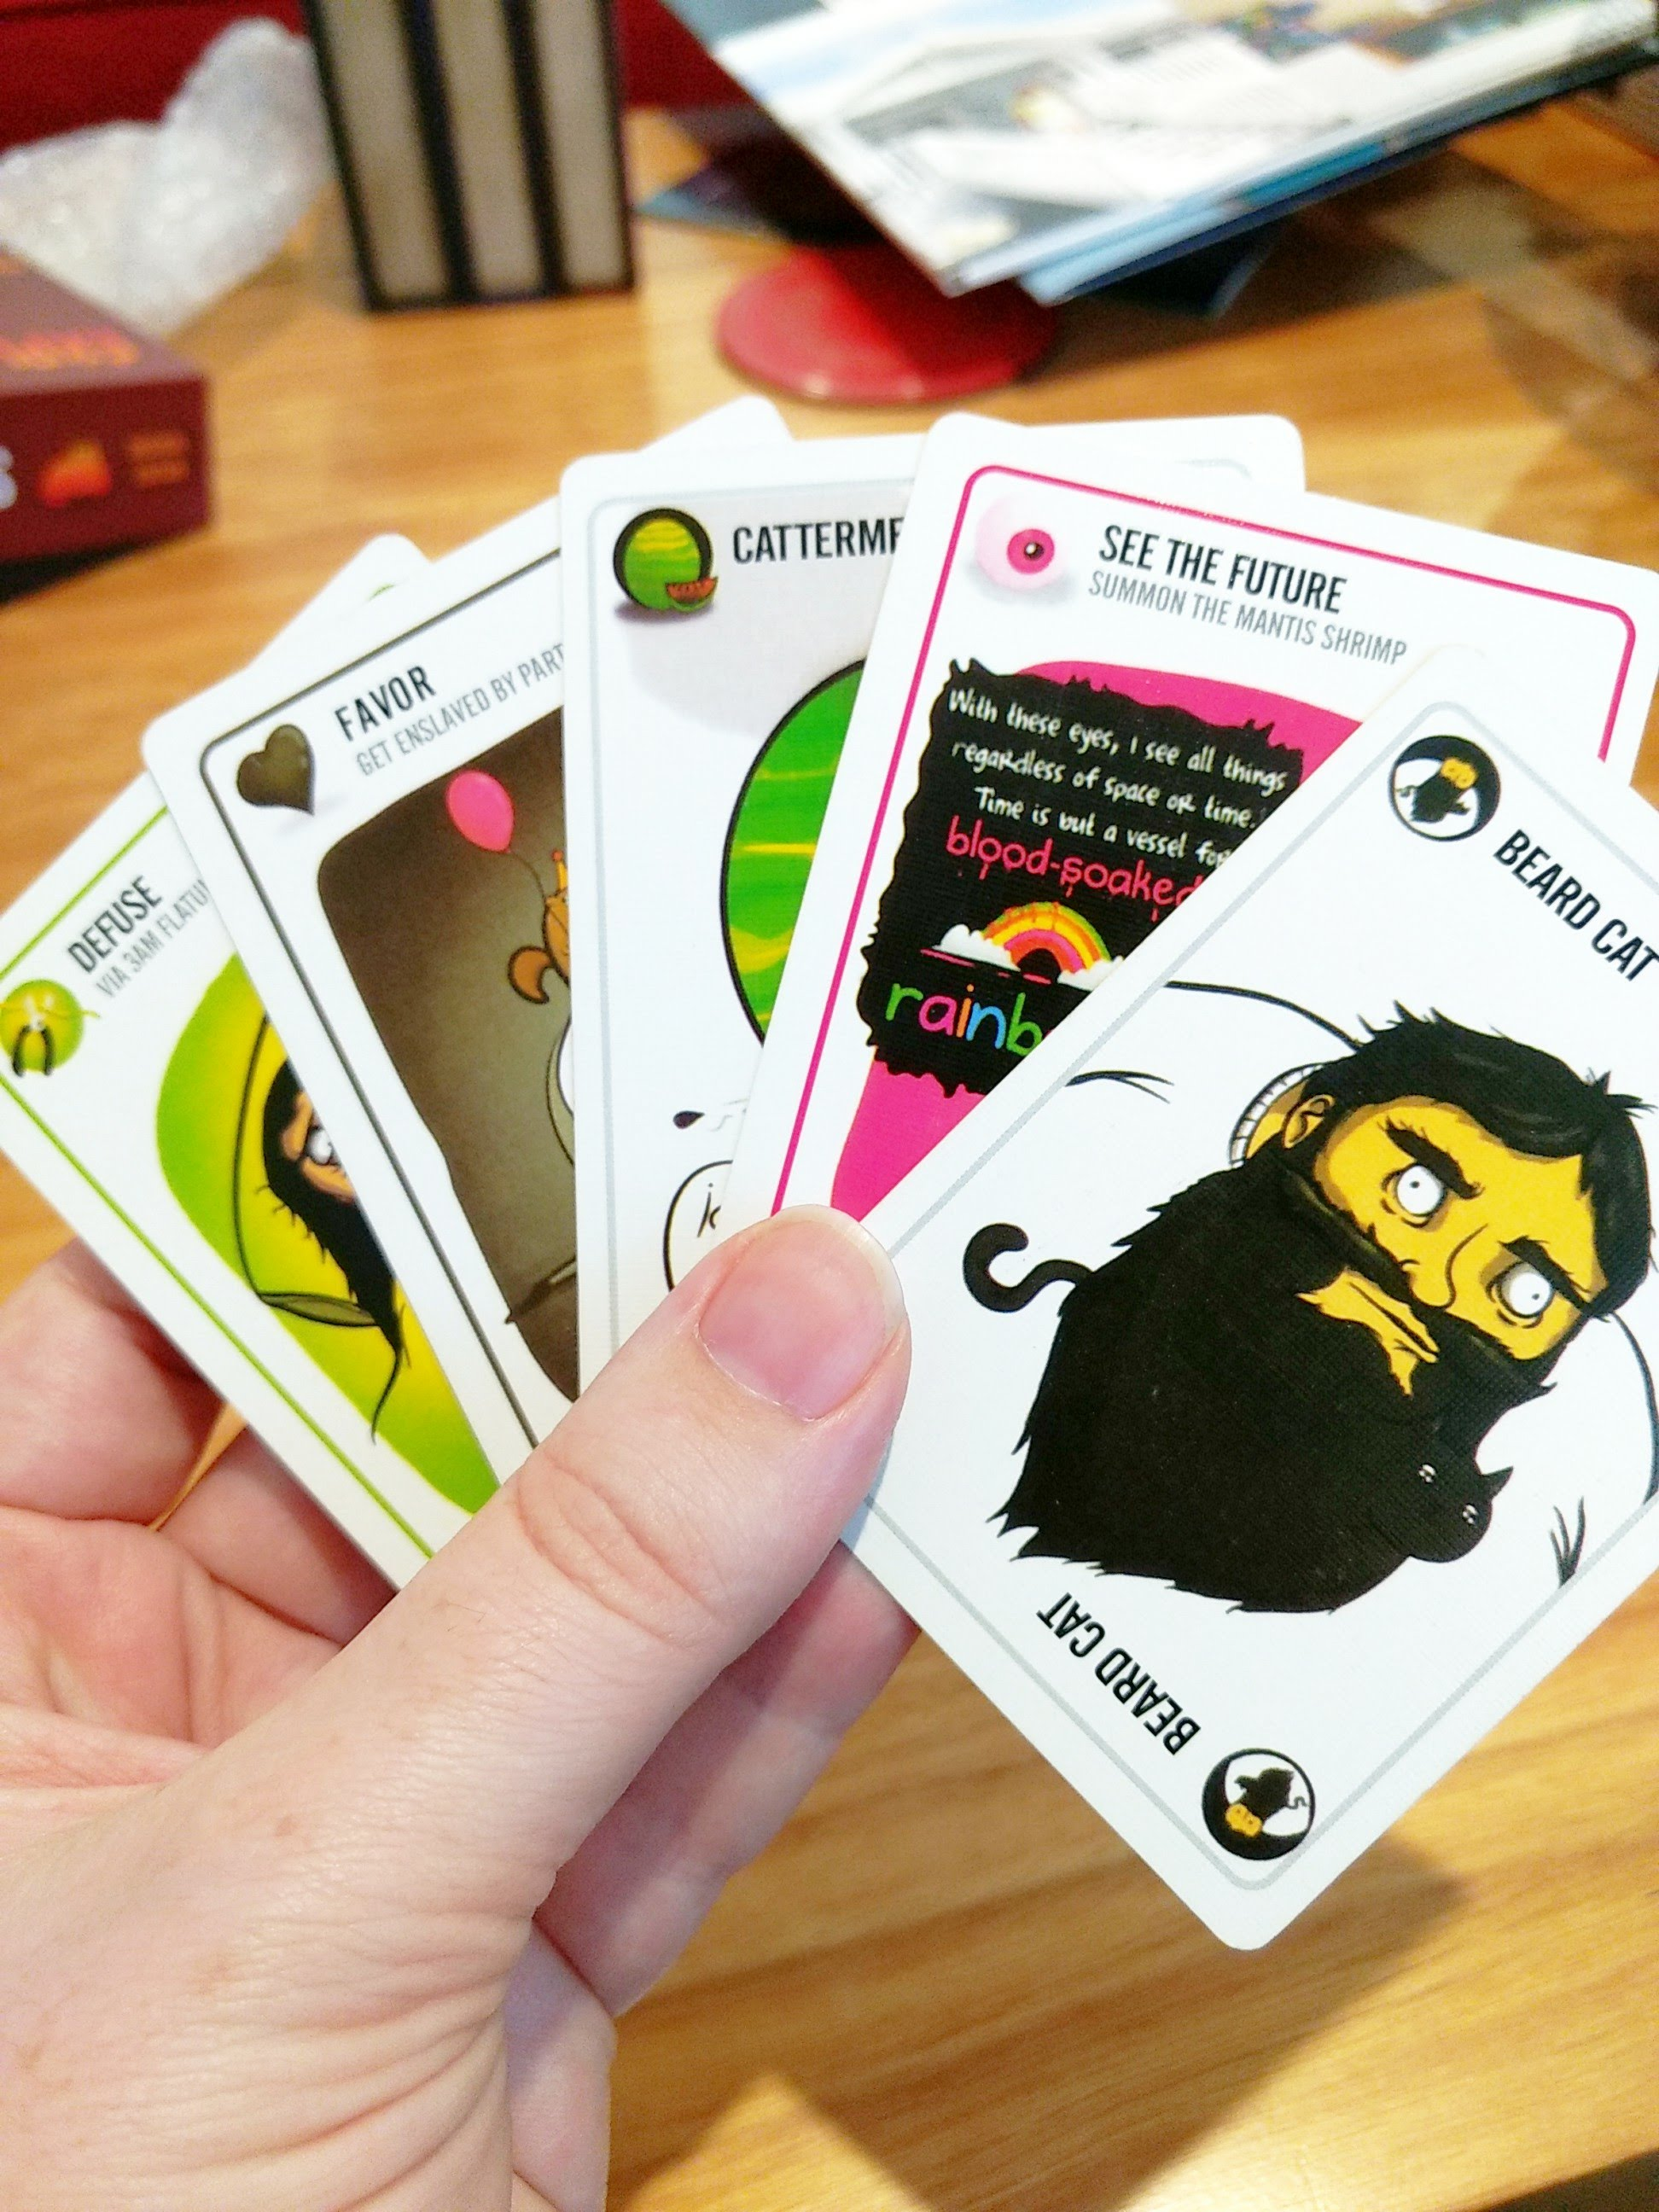 A hand of the cards in Exploding Kittens. Such as beard cat, cattermelon, and see the future!